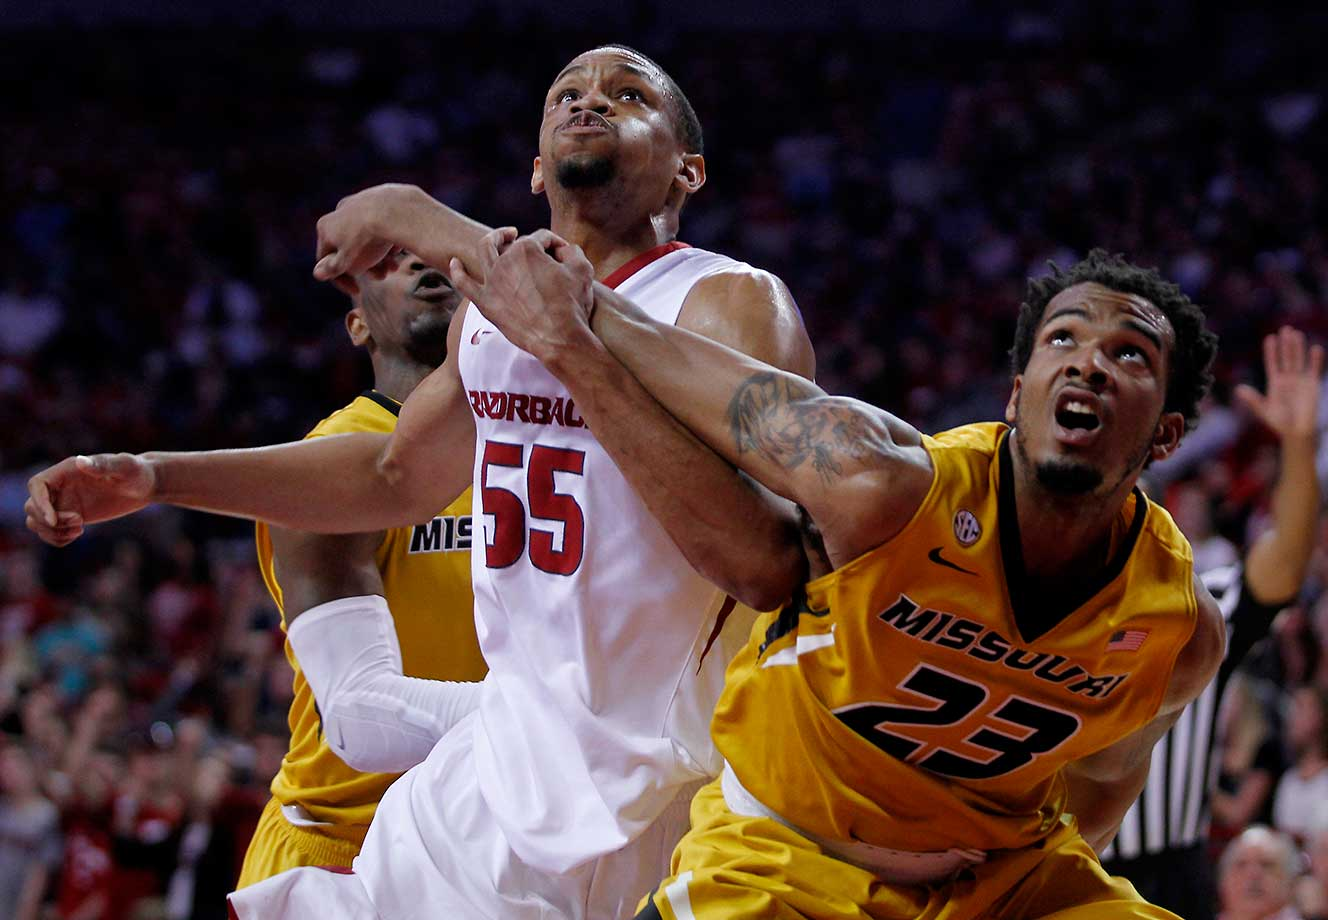 Arkansas' Keaton Miles (55) and Missouri's Jakeenan Gant (23) fight before rebounding a free throw.